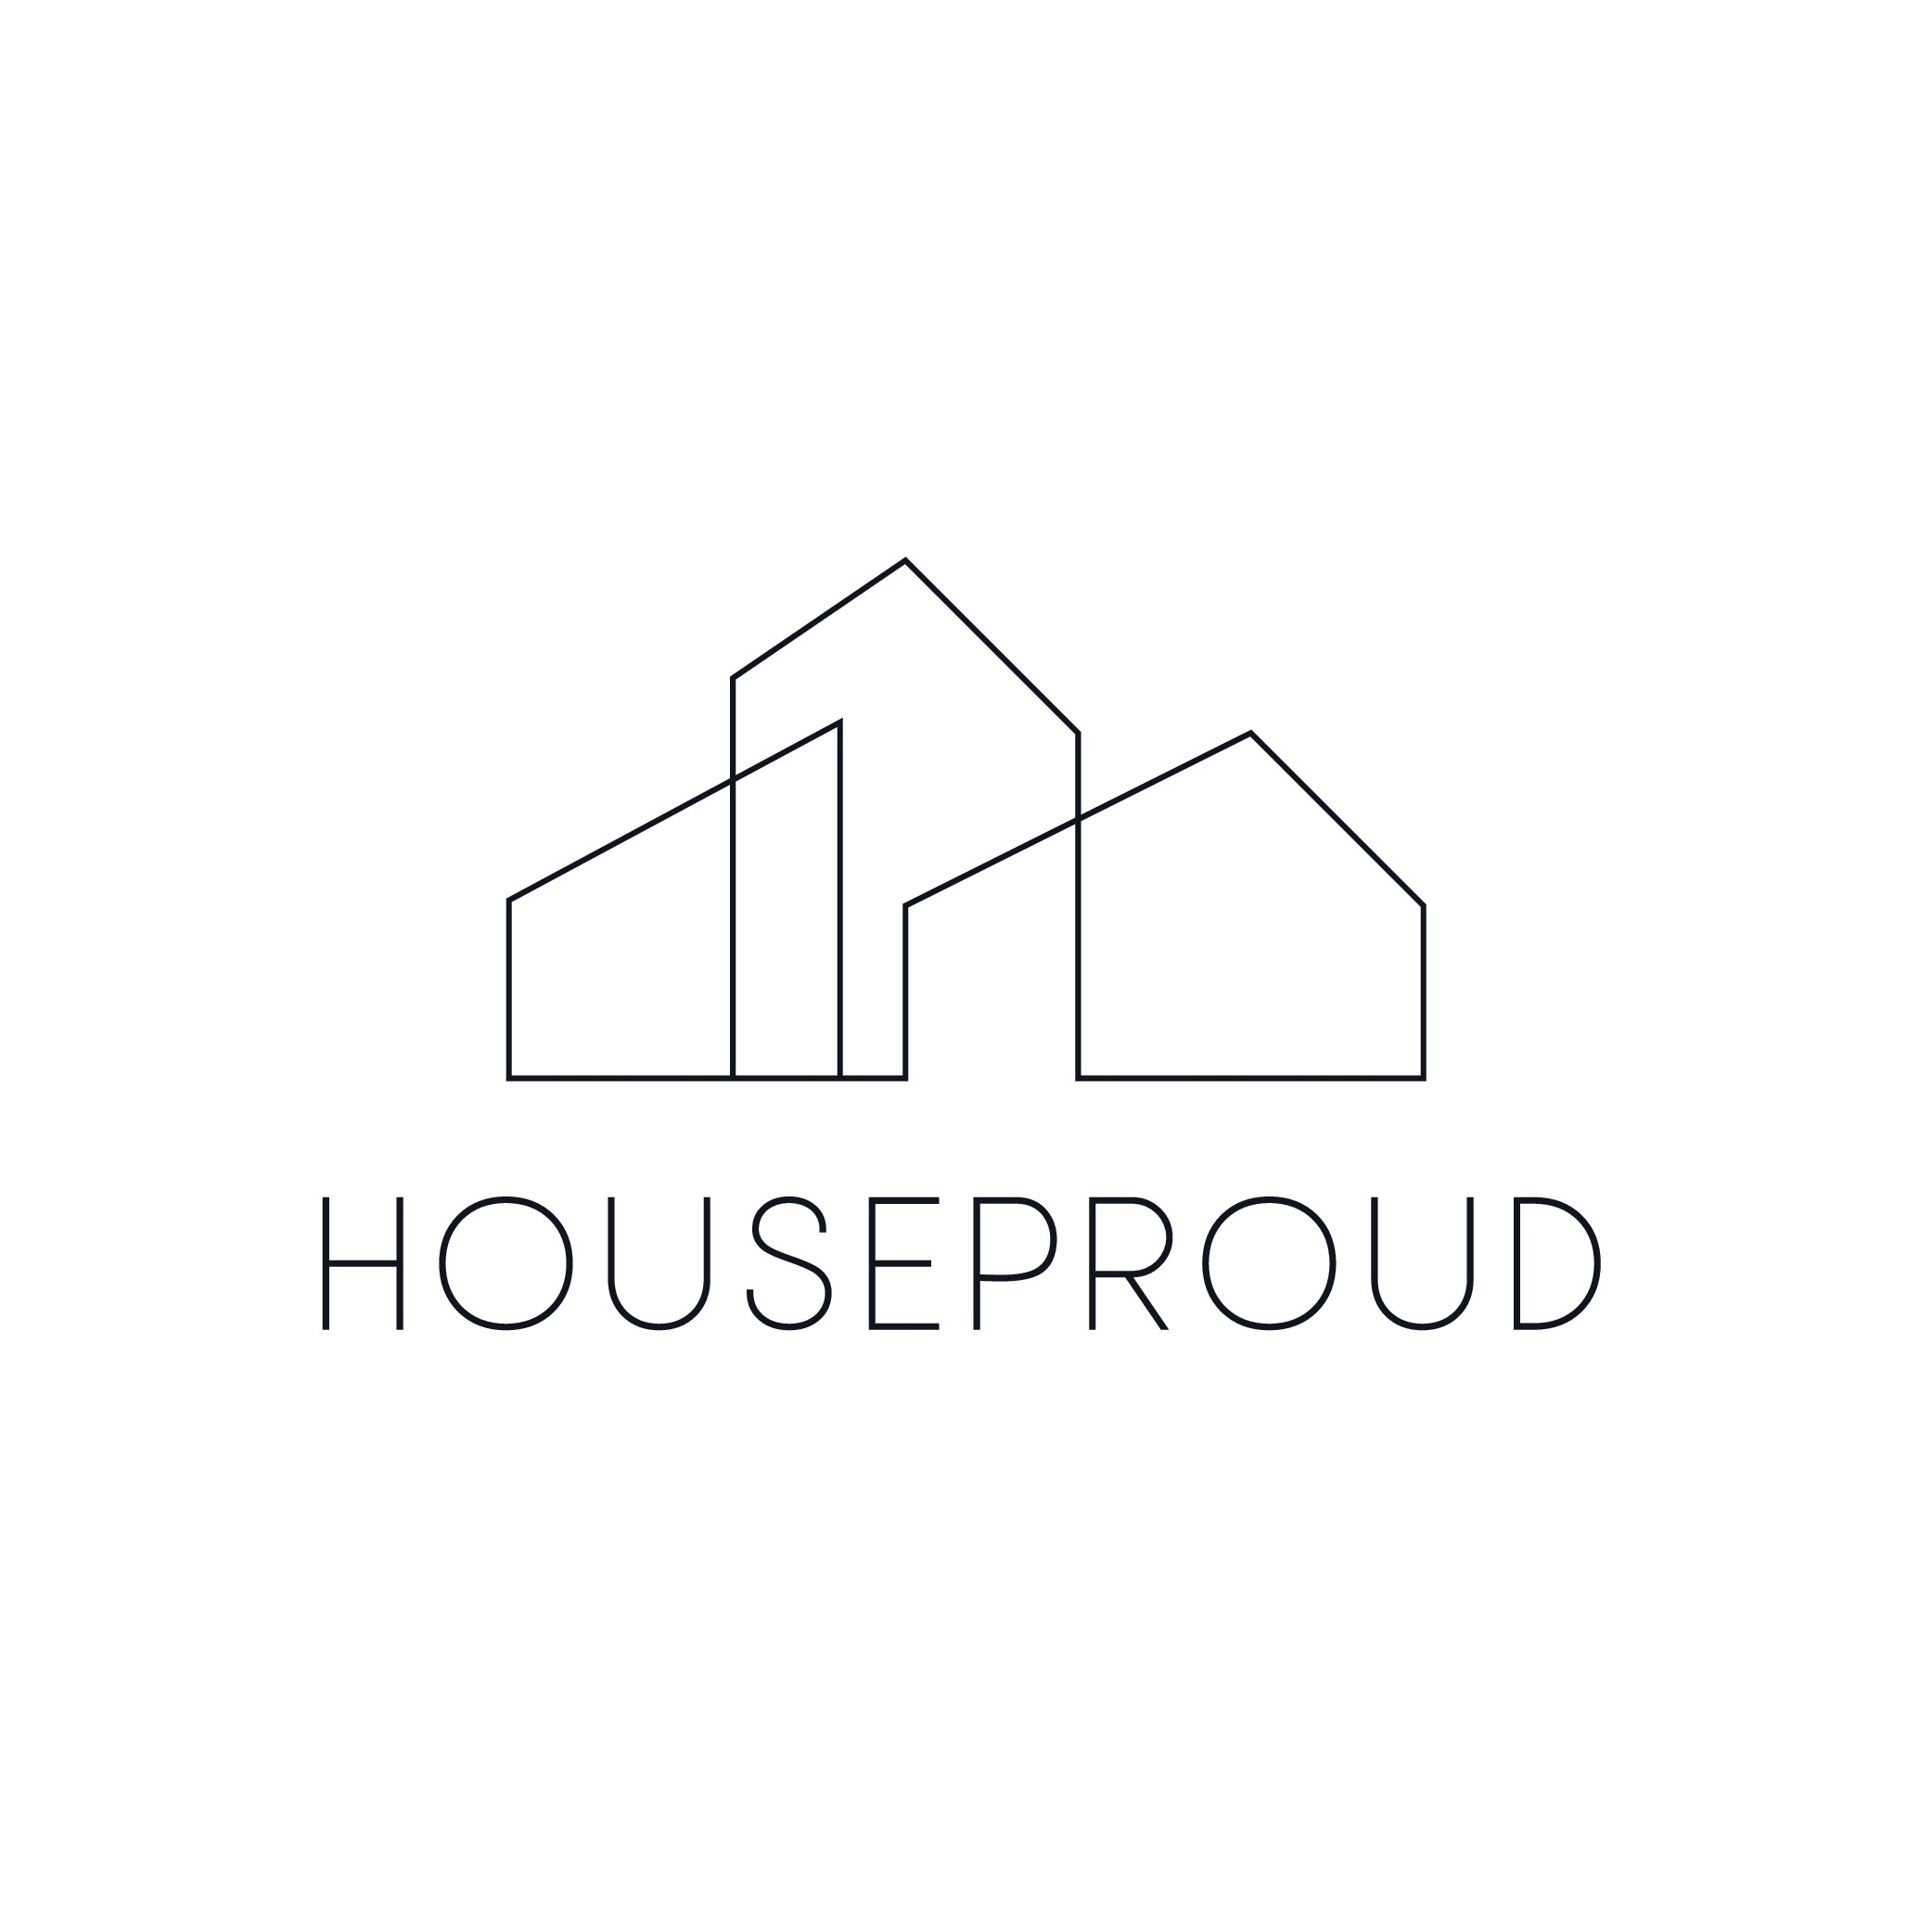 Trendy house flipping company needing logo + for video content and marketing